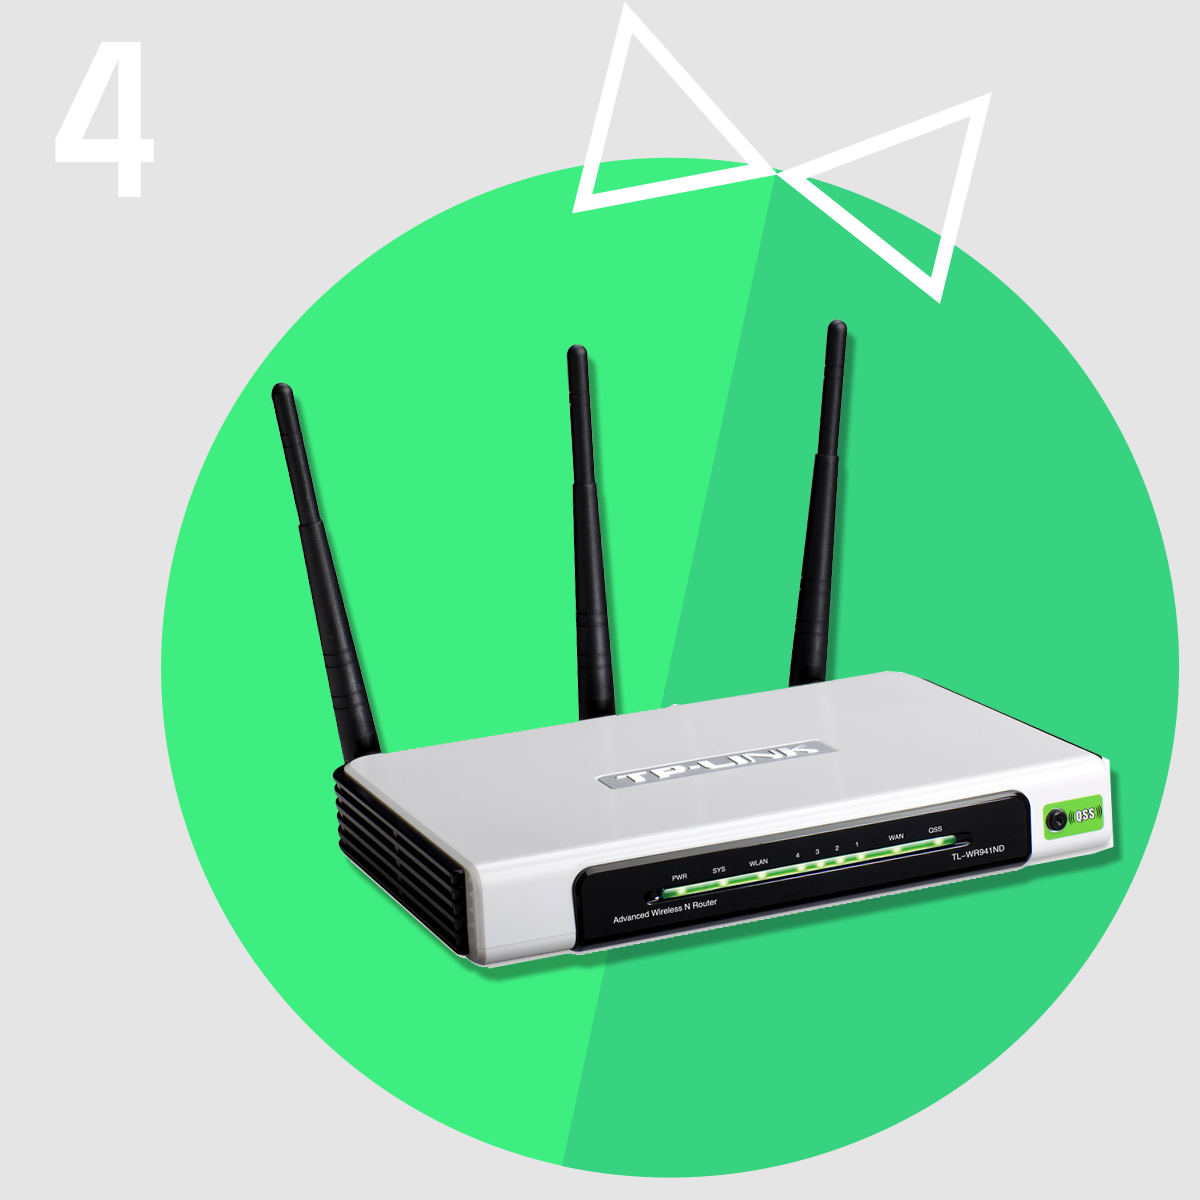 Christmas Gift Idea 4 A Faster Router Need To Boost Up Your Internet Speed Maybe You Just Need To Get A Better Router This Tp Link Wifi Router Provides